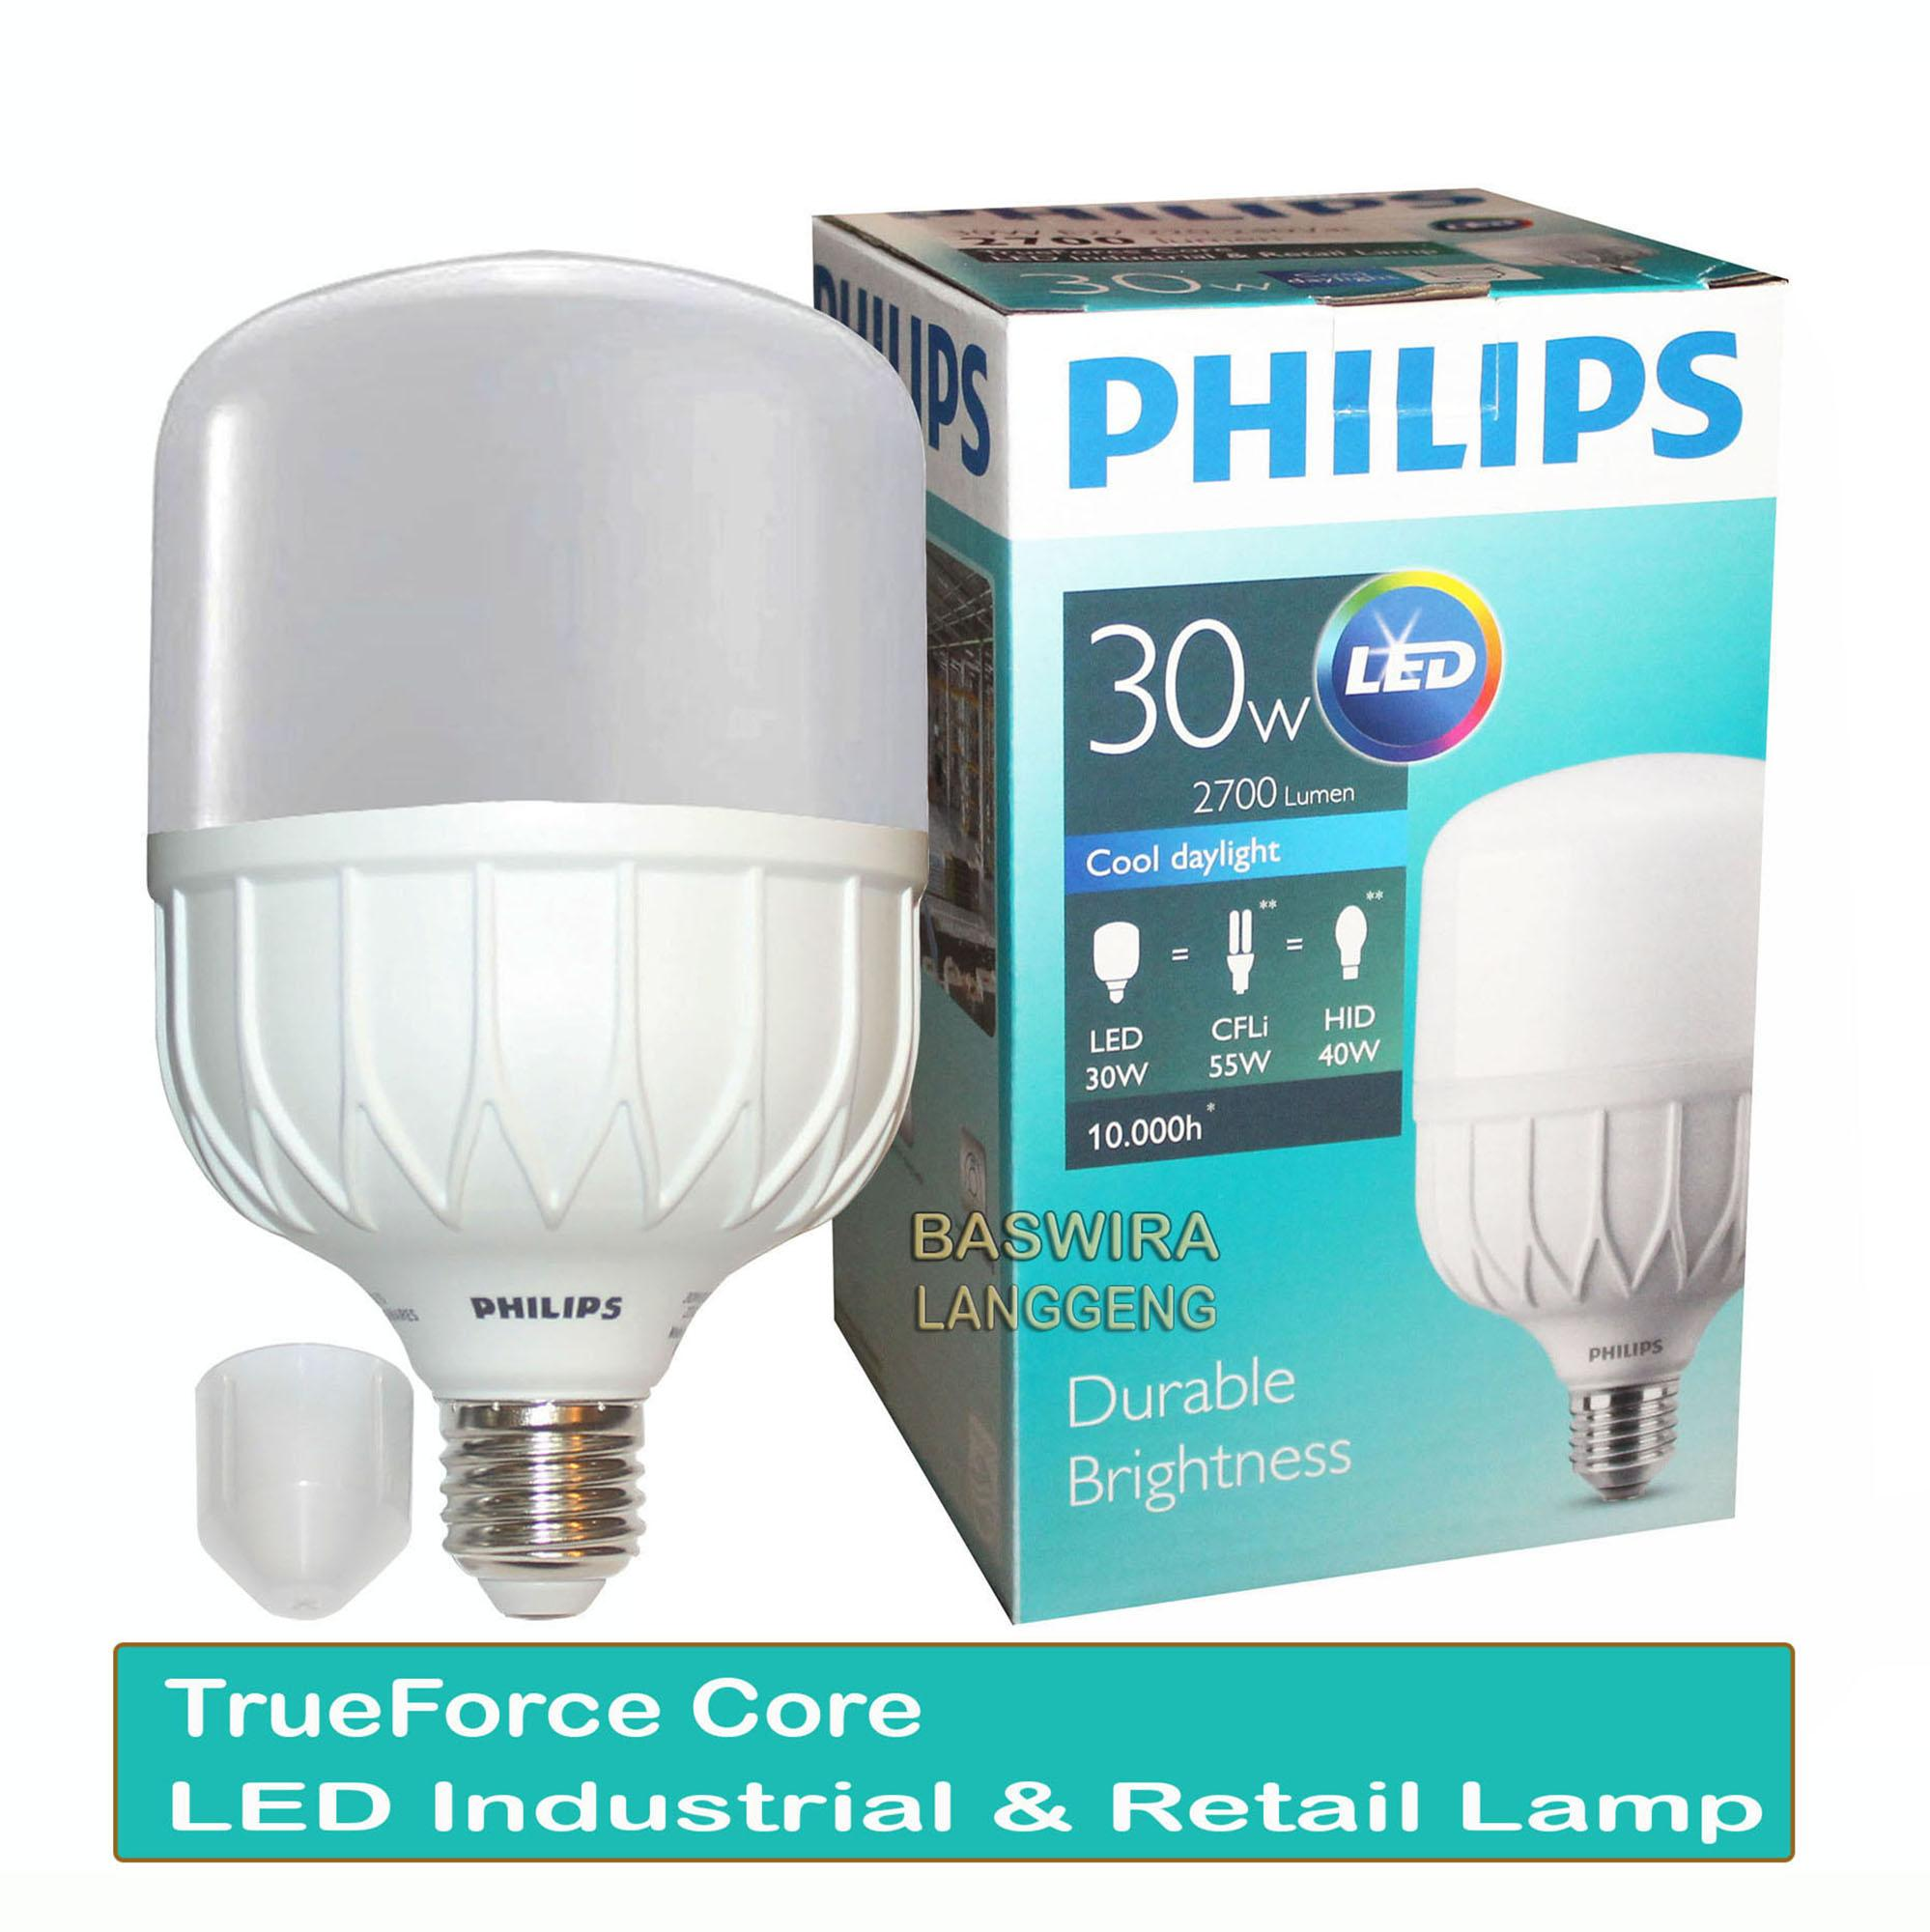 Philips Lampu Led 30w 30 Watt Industrial & Retail Lamp Putih By Baswira Langgeng.